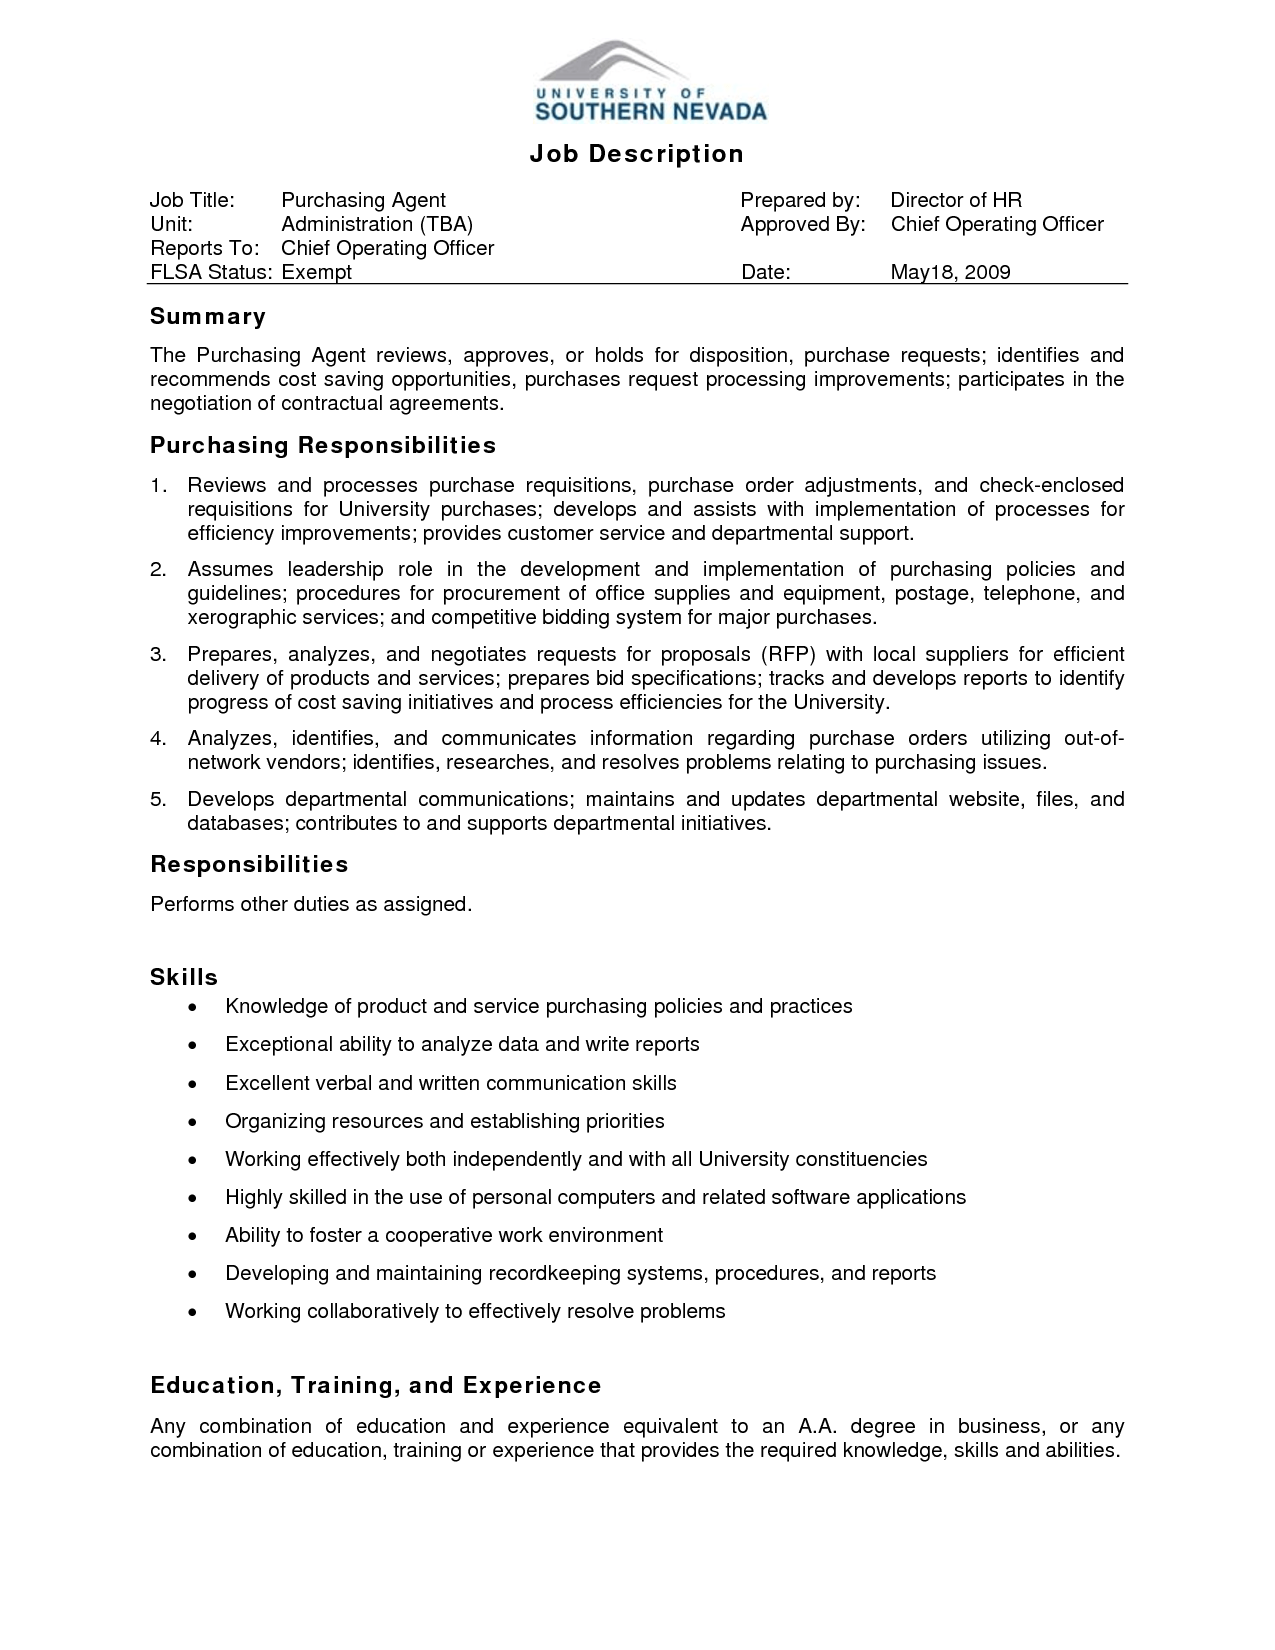 resume sample key strengths resume builder resume sample key strengths resume strengths examples key strengthsskills in a resume roles and responsibilities and